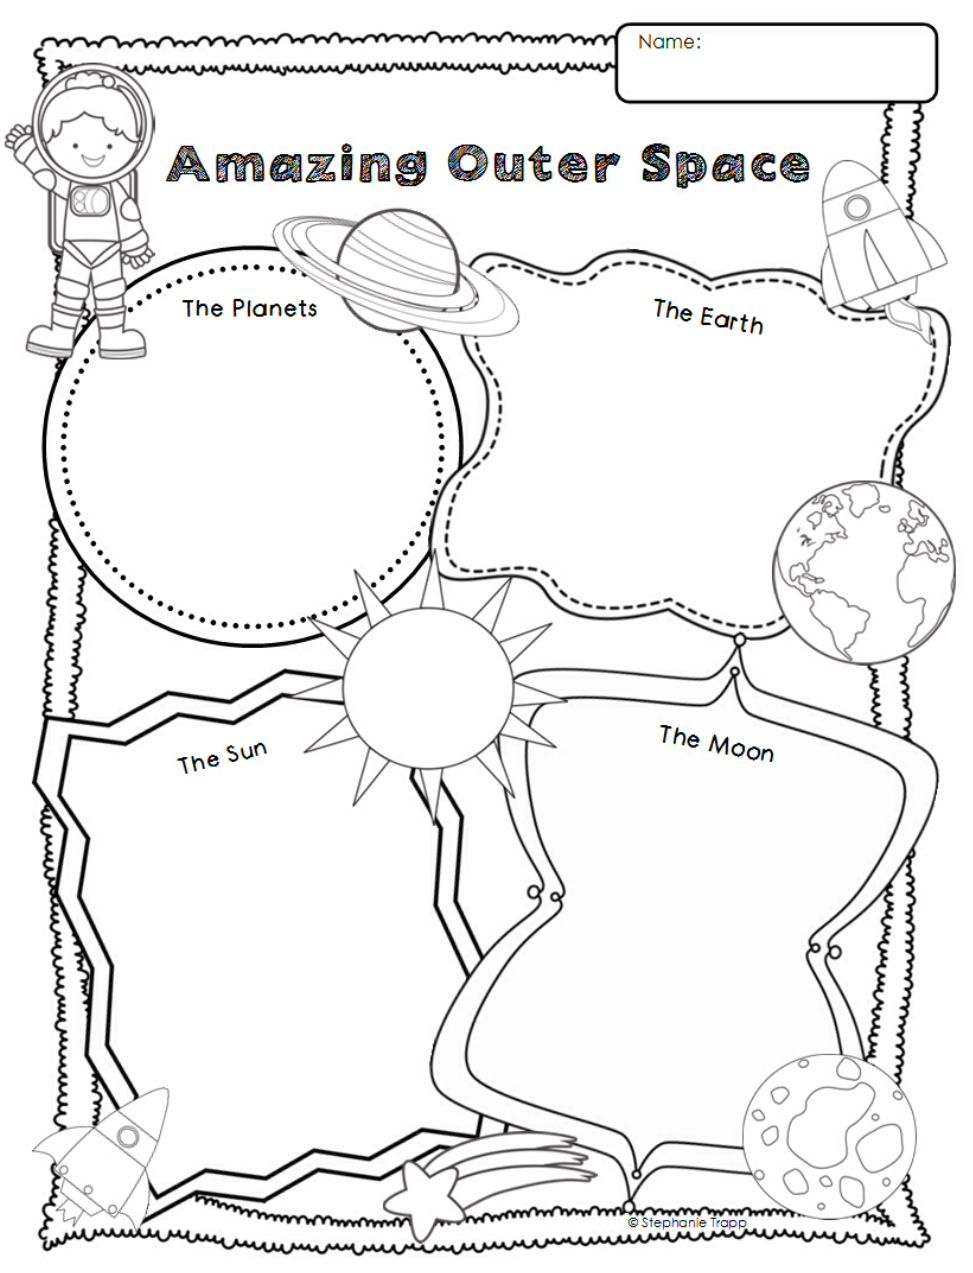 Amazing Outer Space Graphic Organized Worksheets For Kids Graphic Organizers Space Activities For Kids [ 1273 x 973 Pixel ]